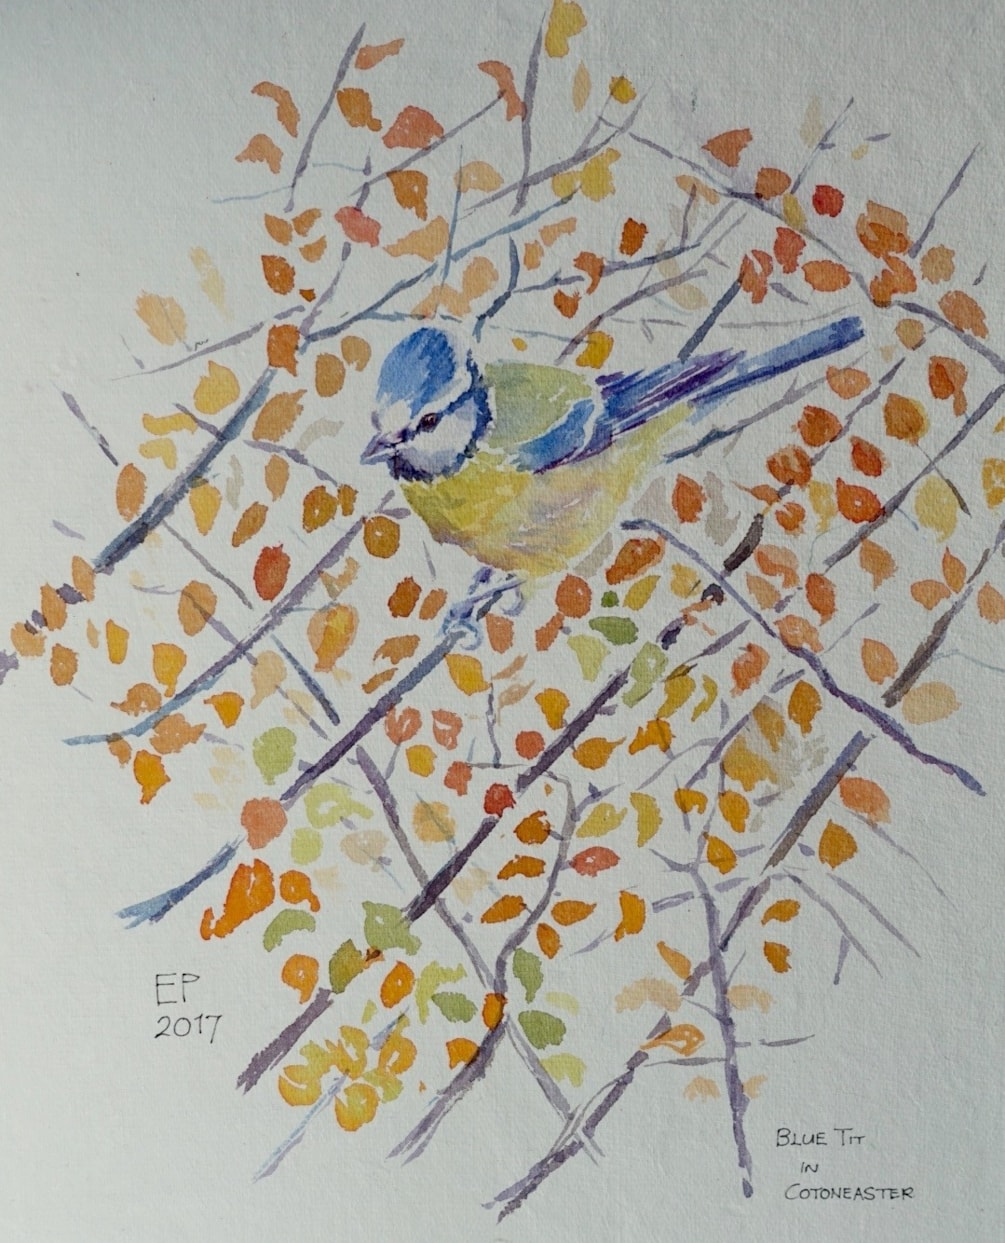 Blue tit in cotoneaster